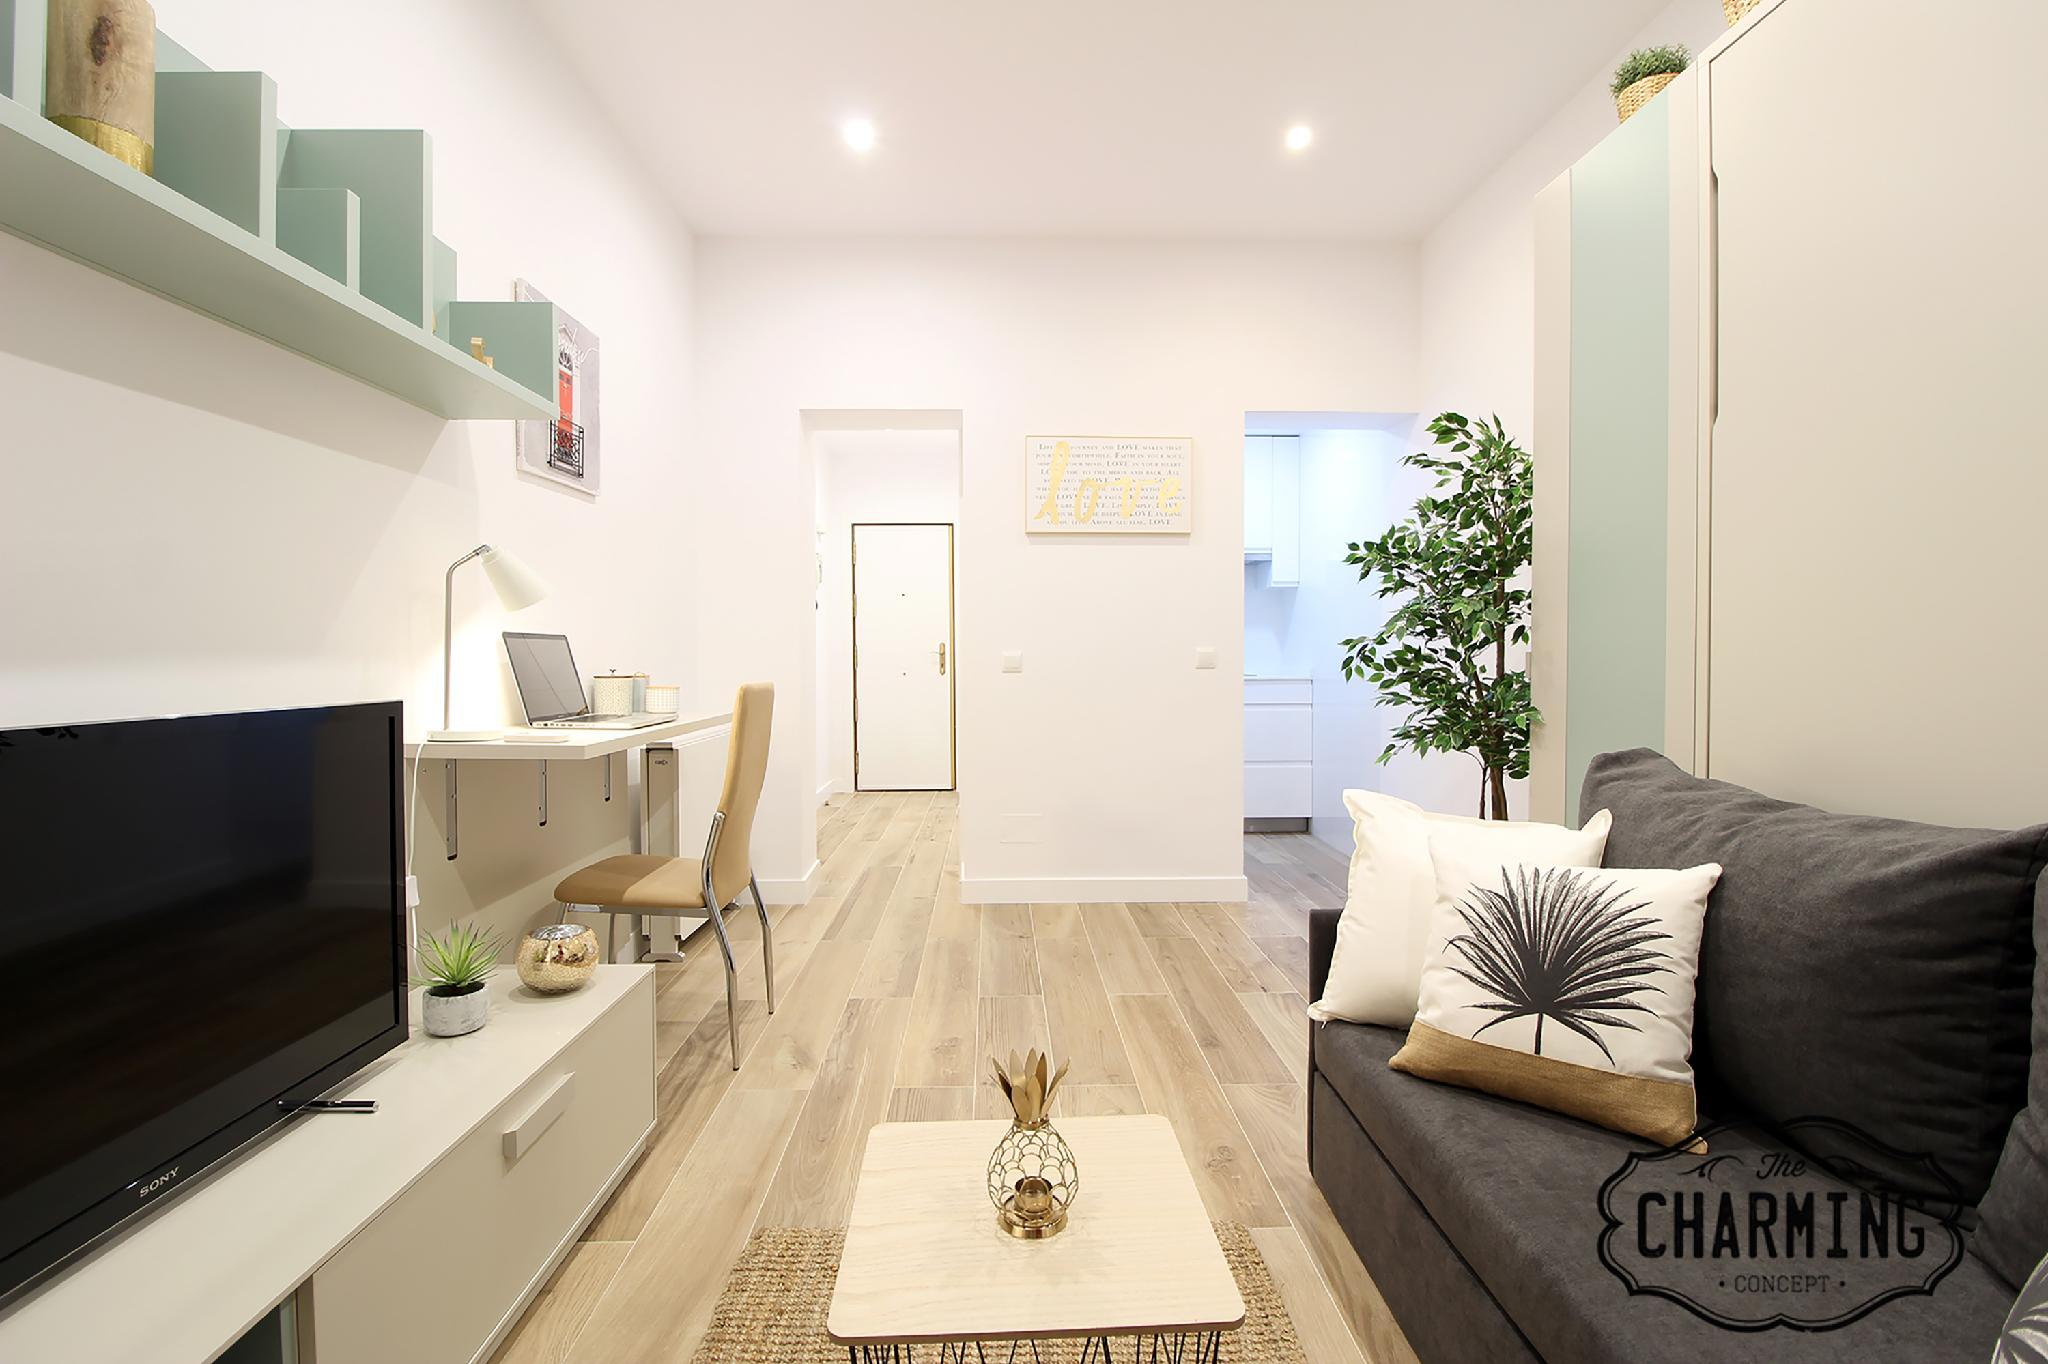 Charming Puerta del Sol - Newly Refubished Studio